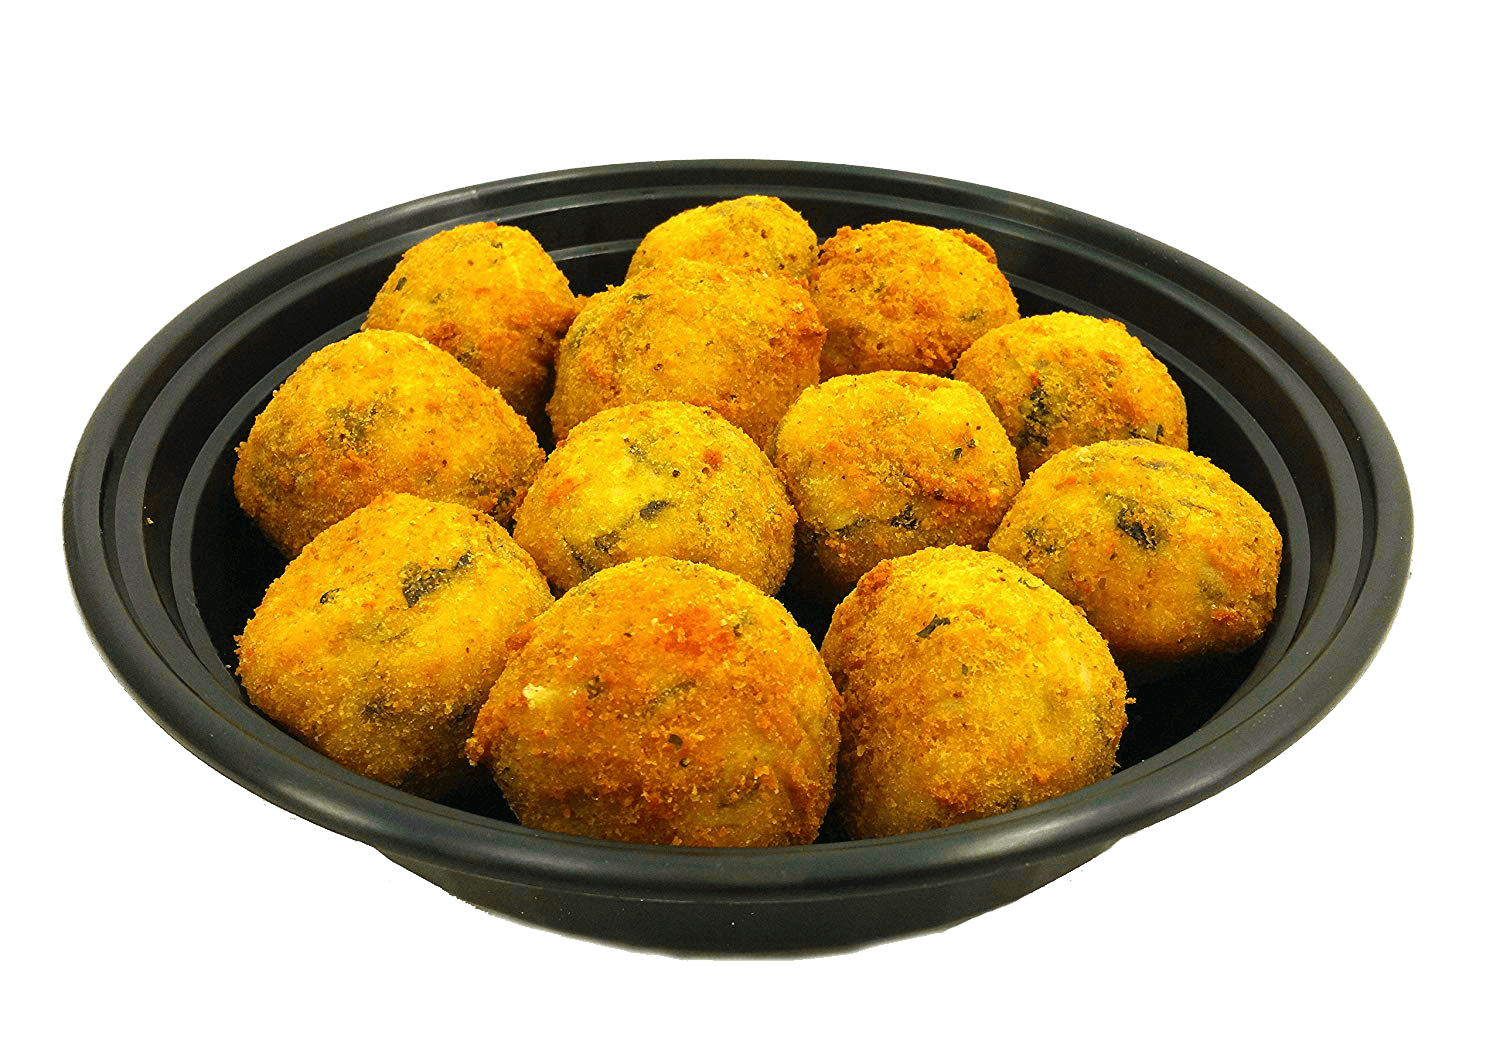 Prepared Food - 24 Mini Spinach Italian Rice Balls (Arancini) Made Fresh Daily - Ready To Eat